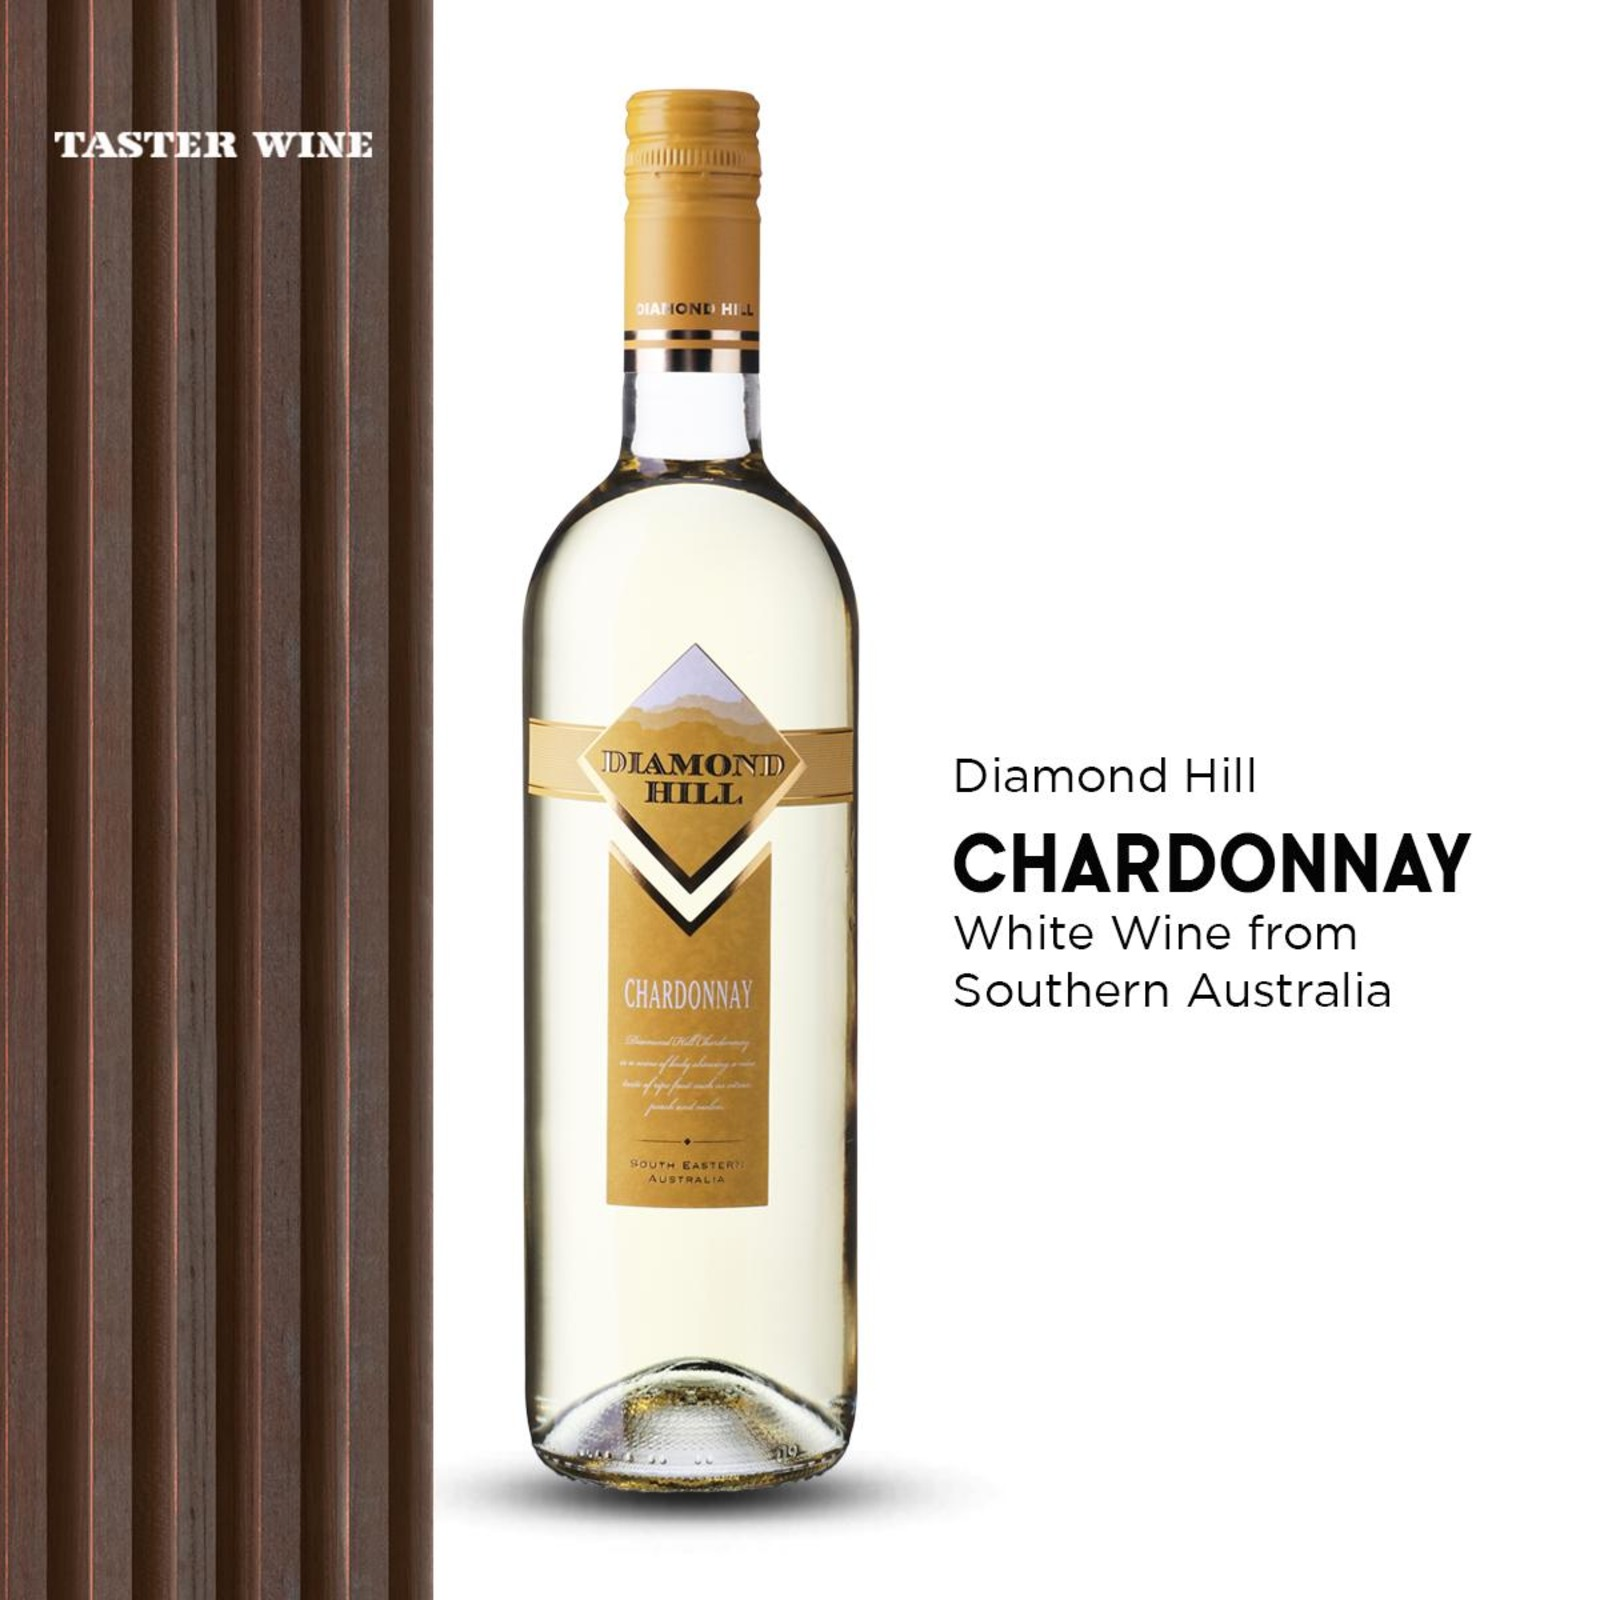 Diamond Hill Chardonnay - White Wine